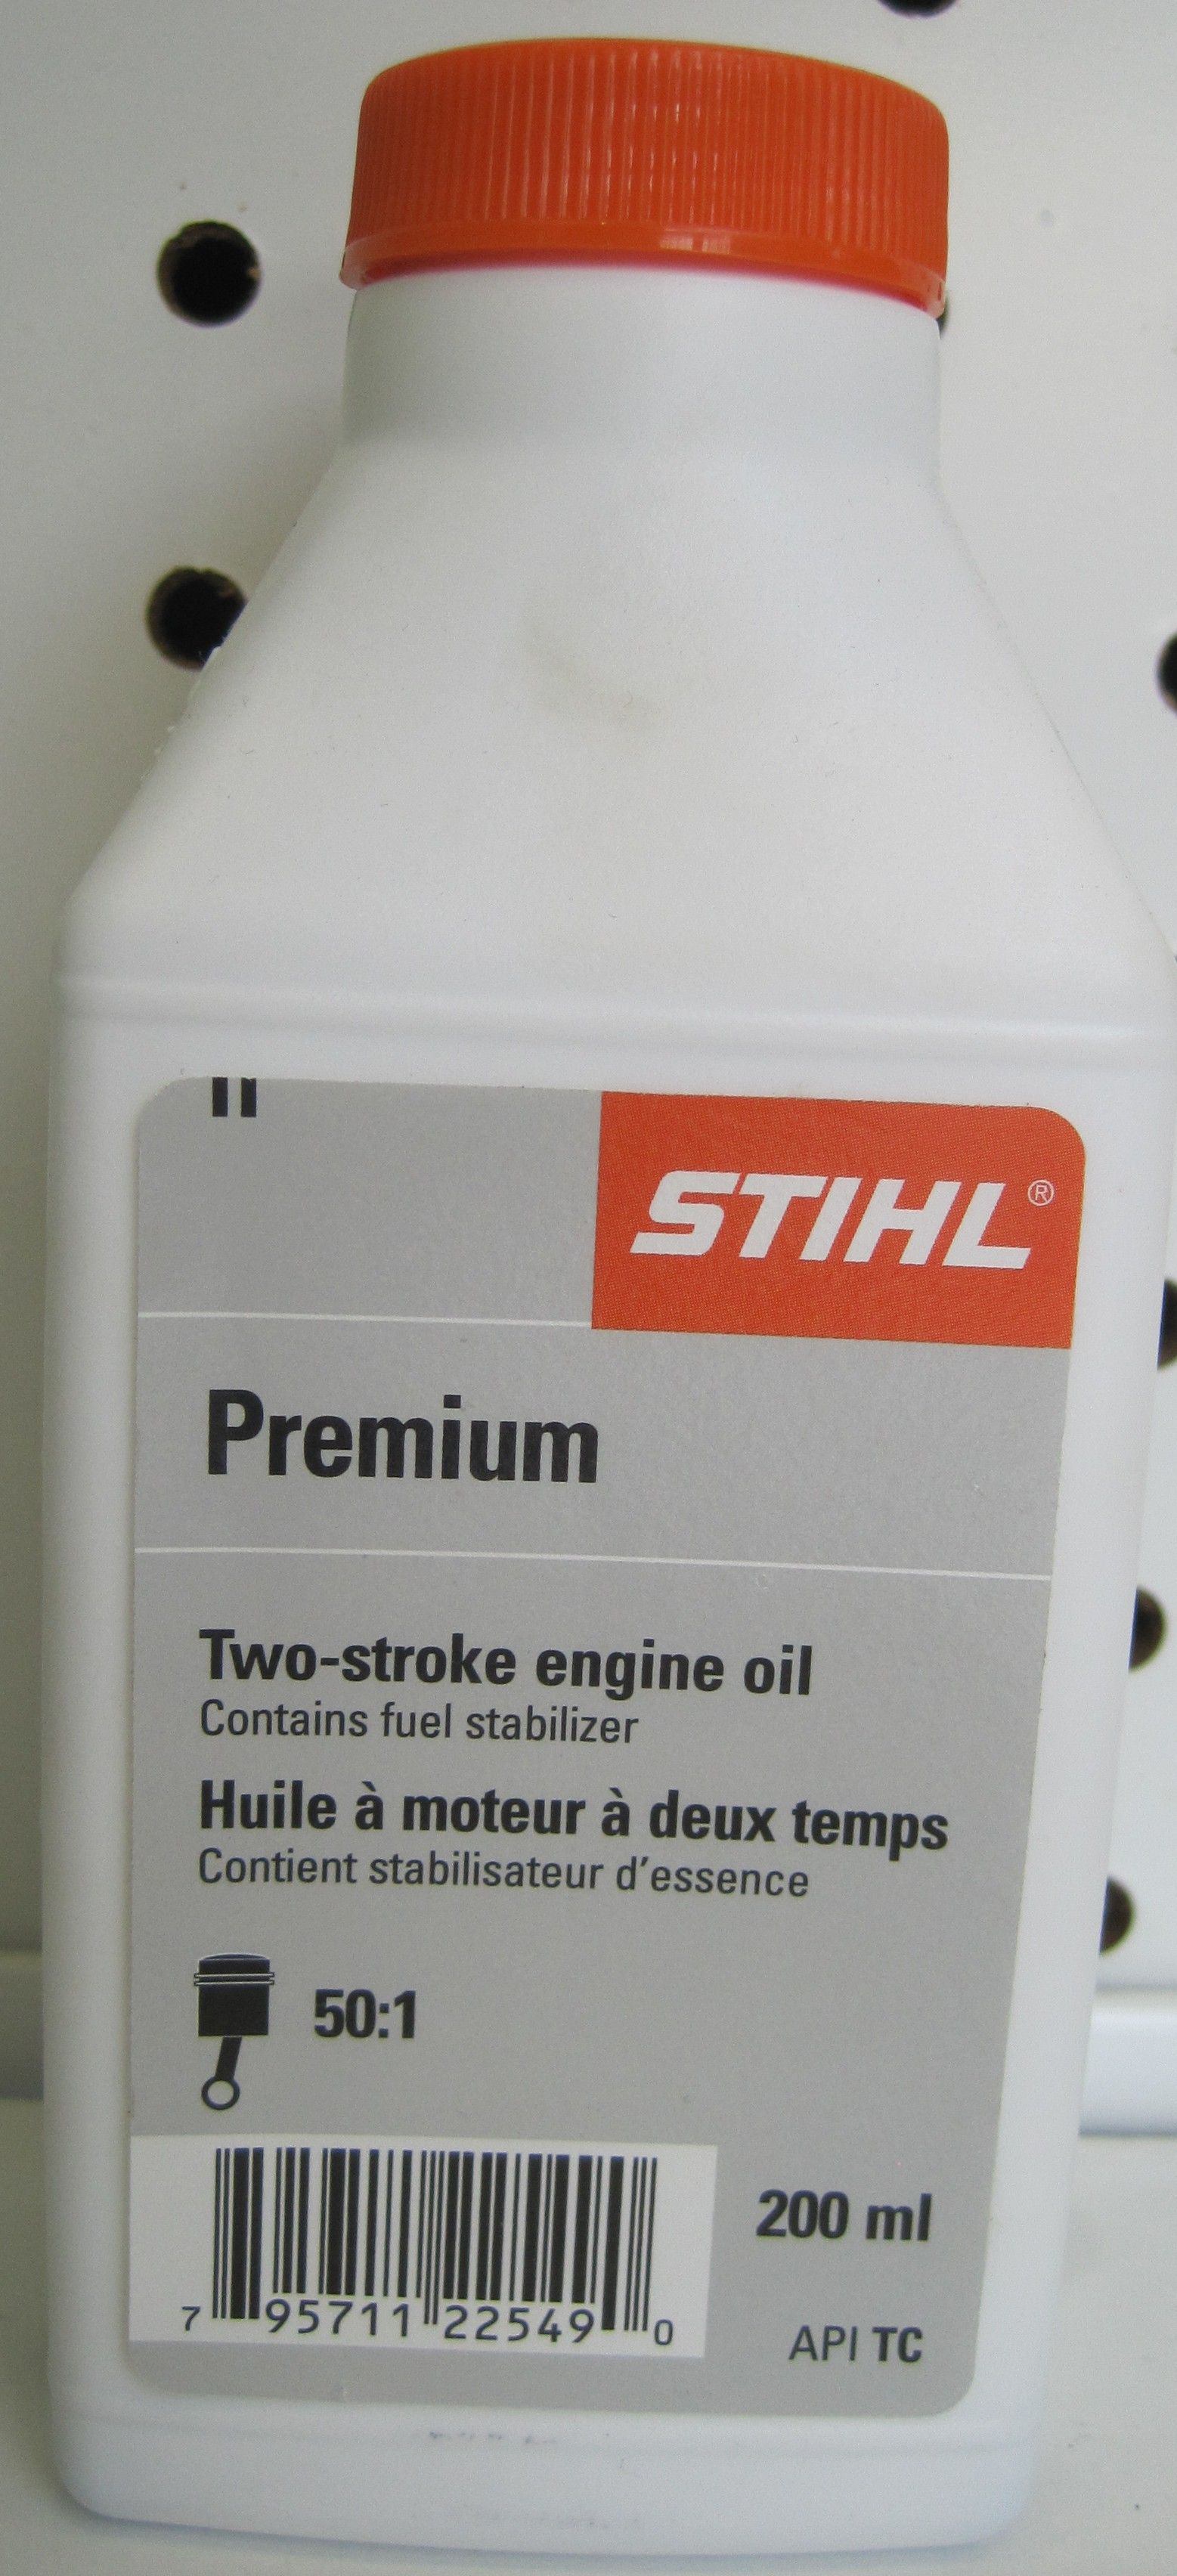 STIHL individual 200mL unit